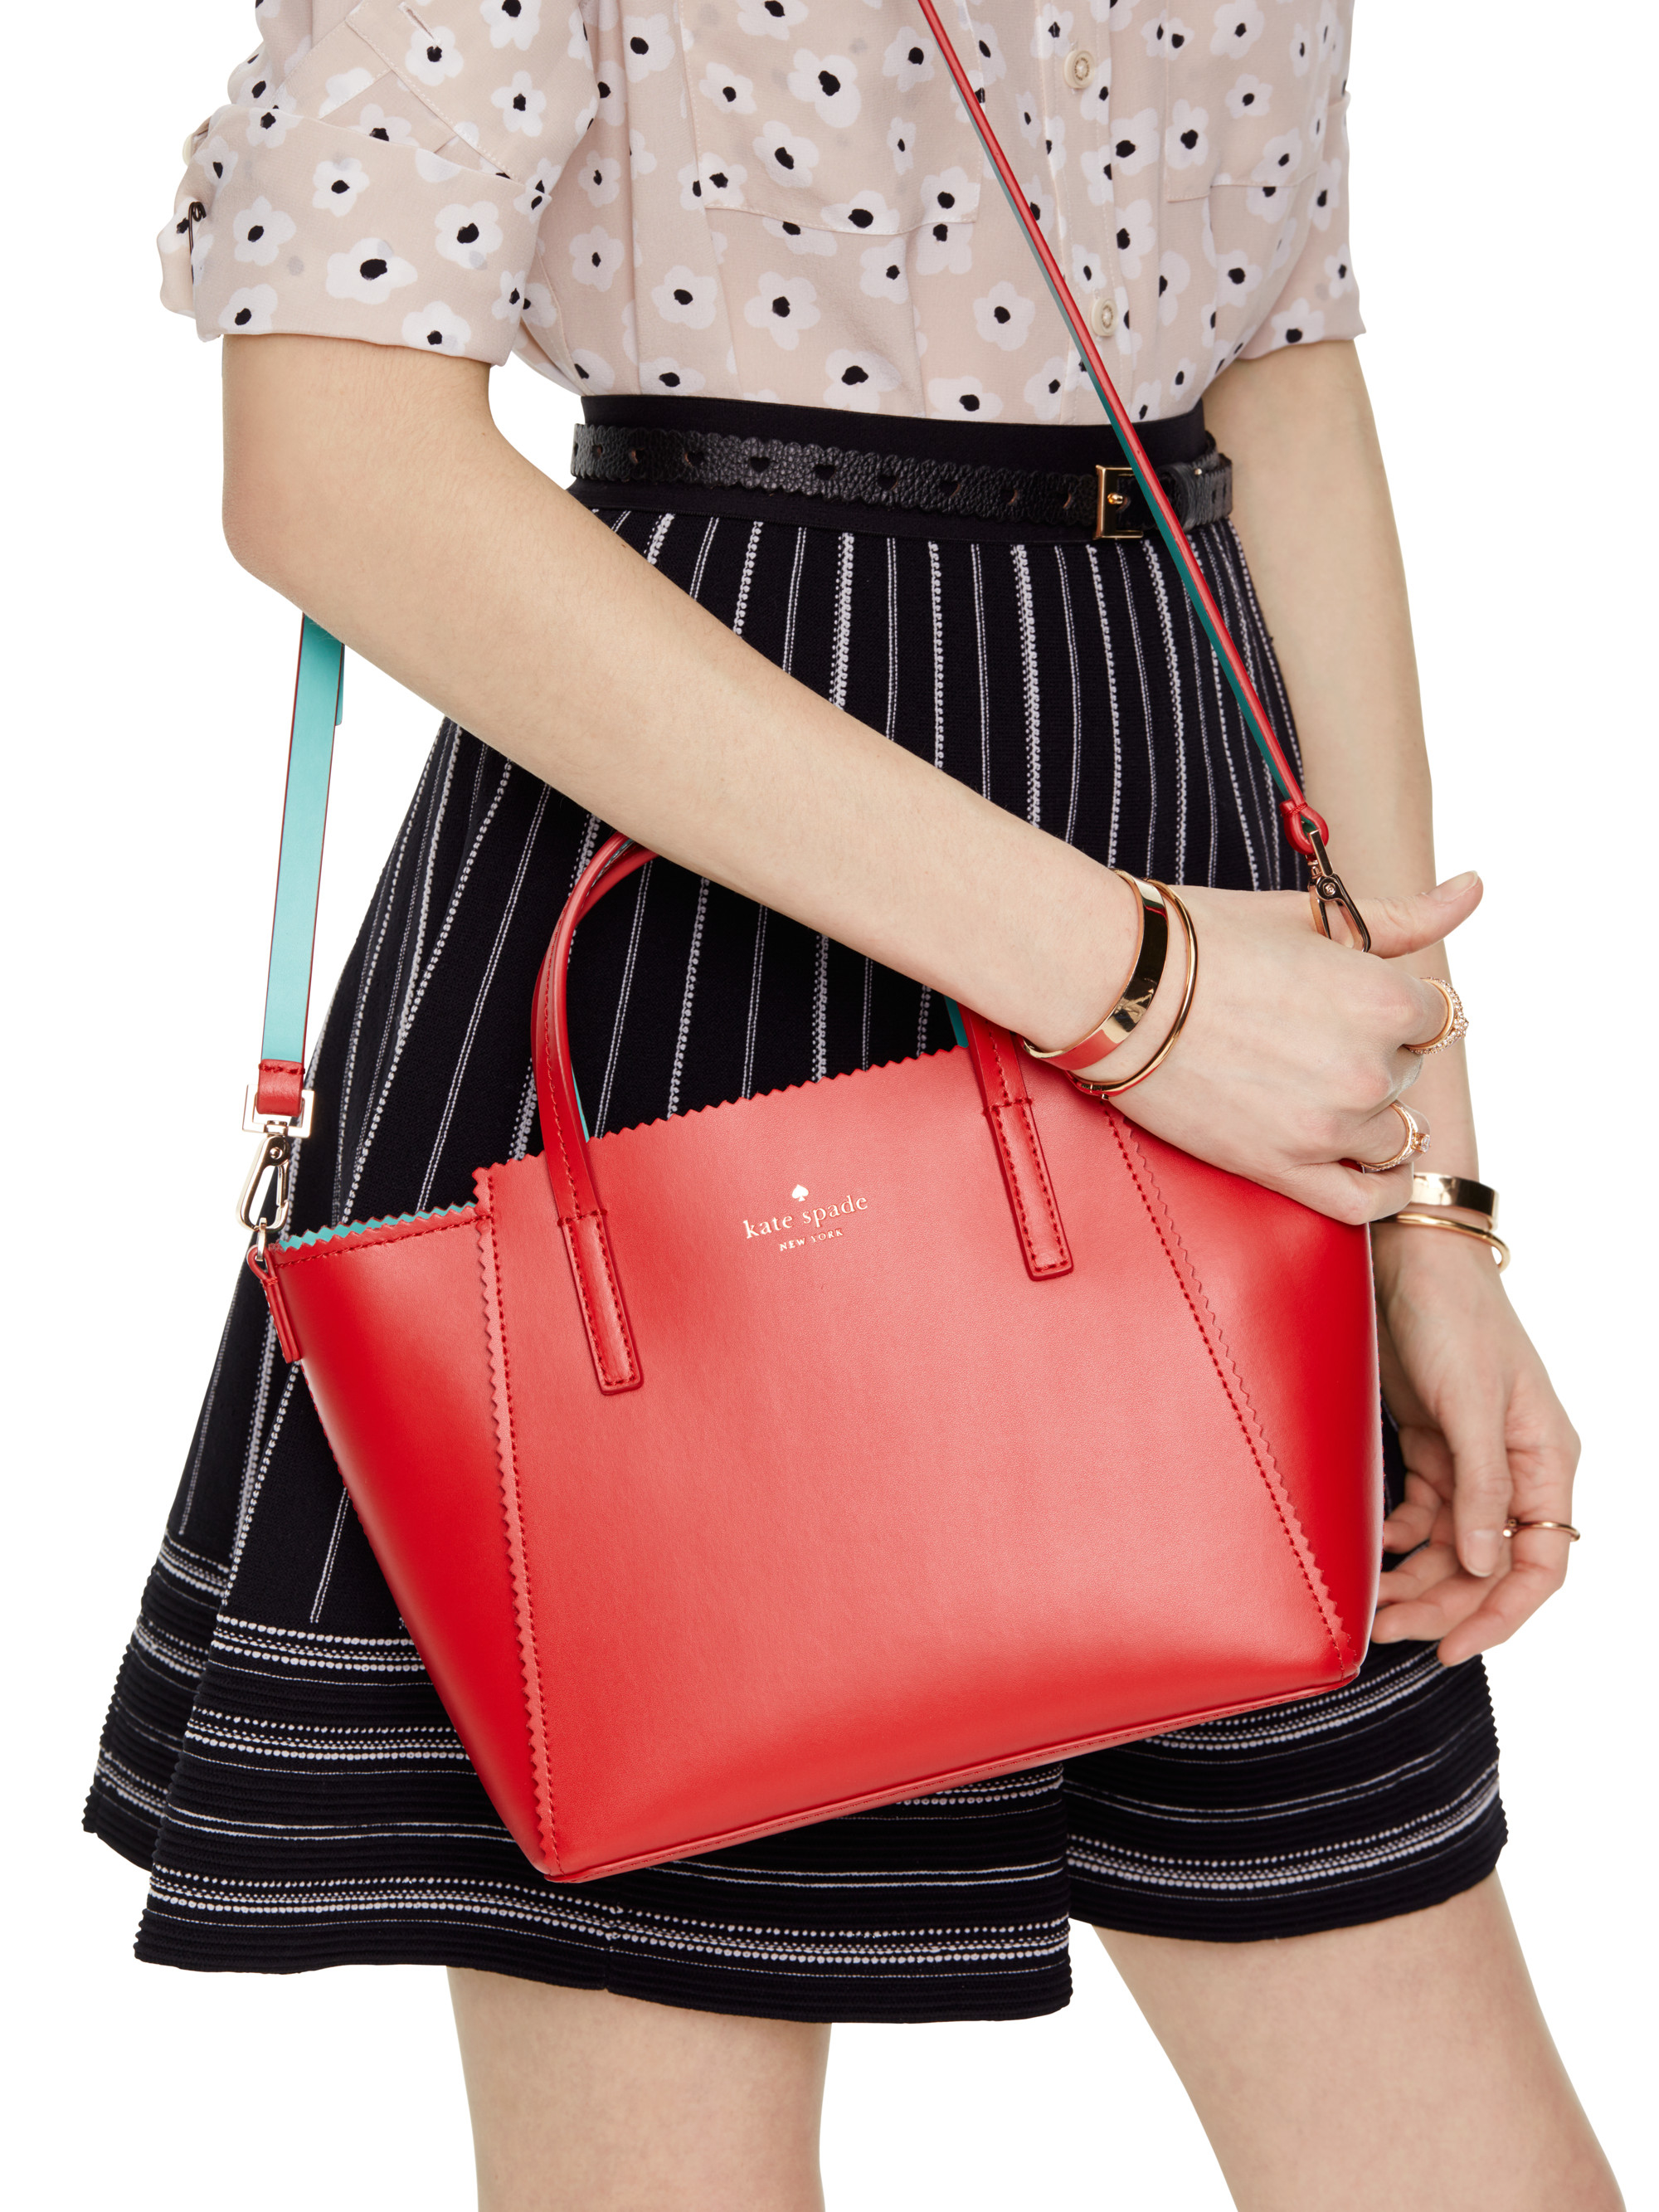 7d9a9cf3b3831 Lyst - Kate Spade Ivy Drive Small Loryn in Red